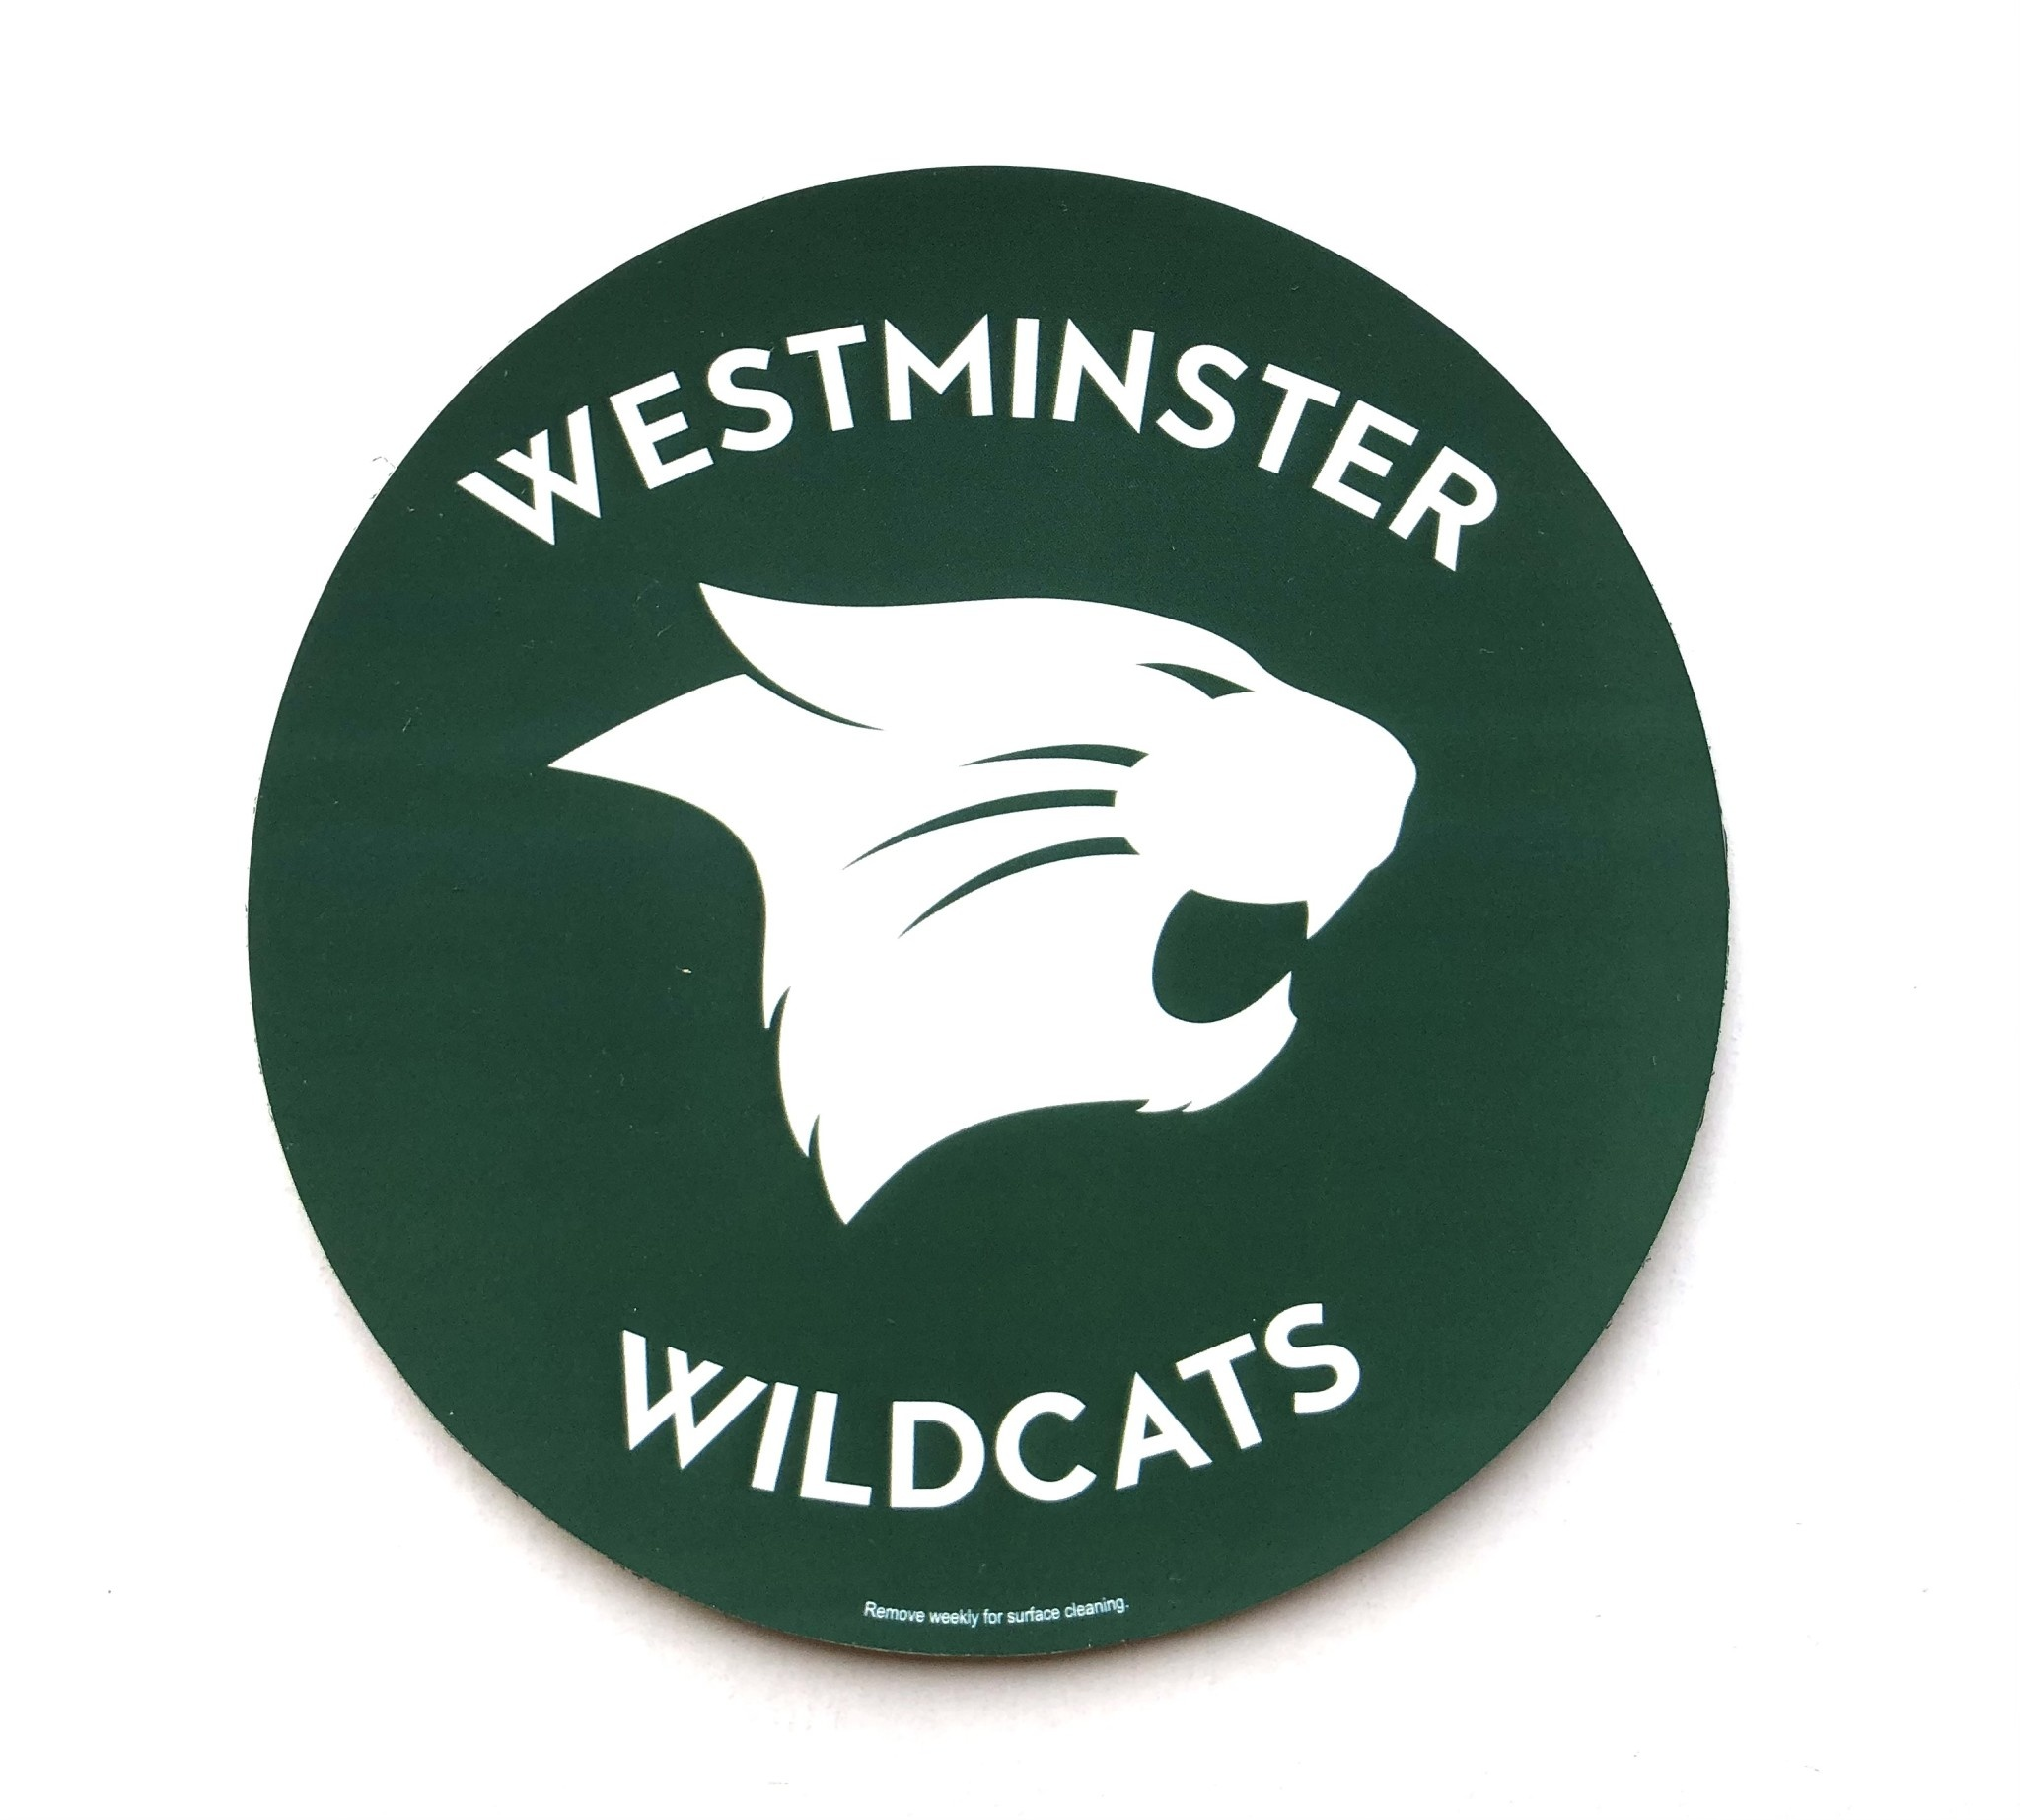 Magnet: Round Green - Westminster Wildcats